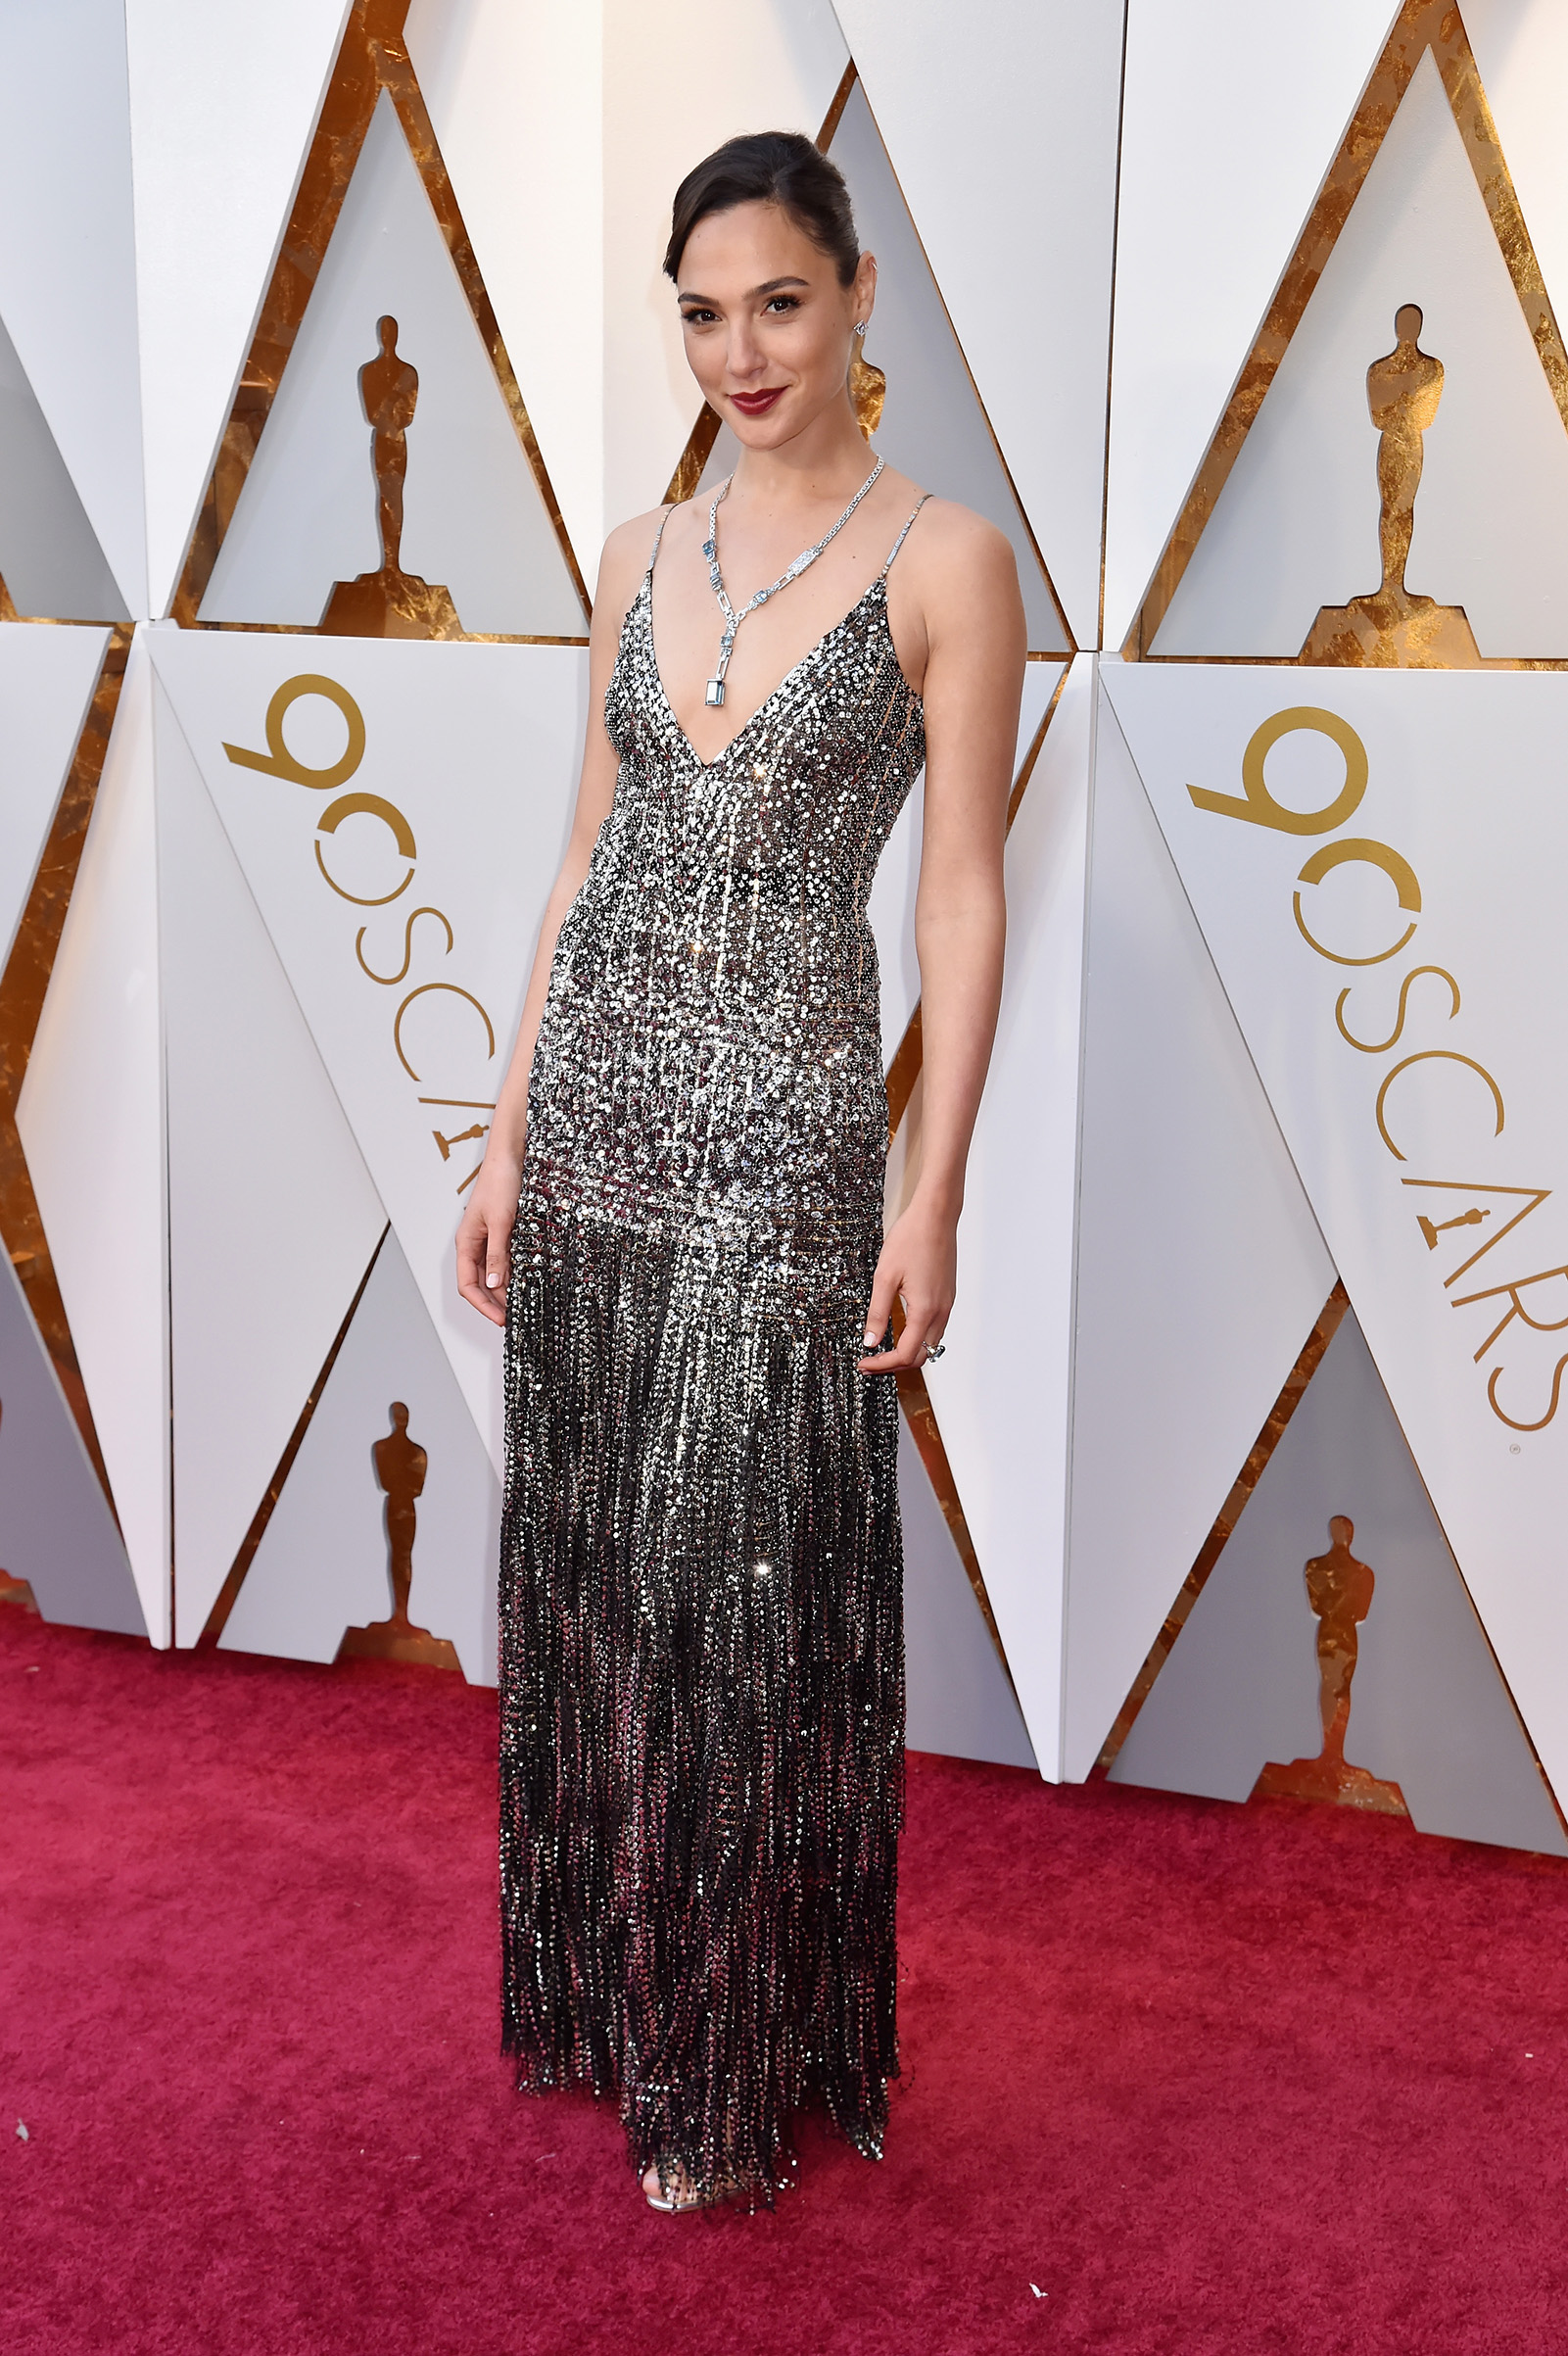 Gal Gadot attends the 90th Annual Academy Awards at Hollywood & Highland Center on March 4, 2018 in Hollywood.